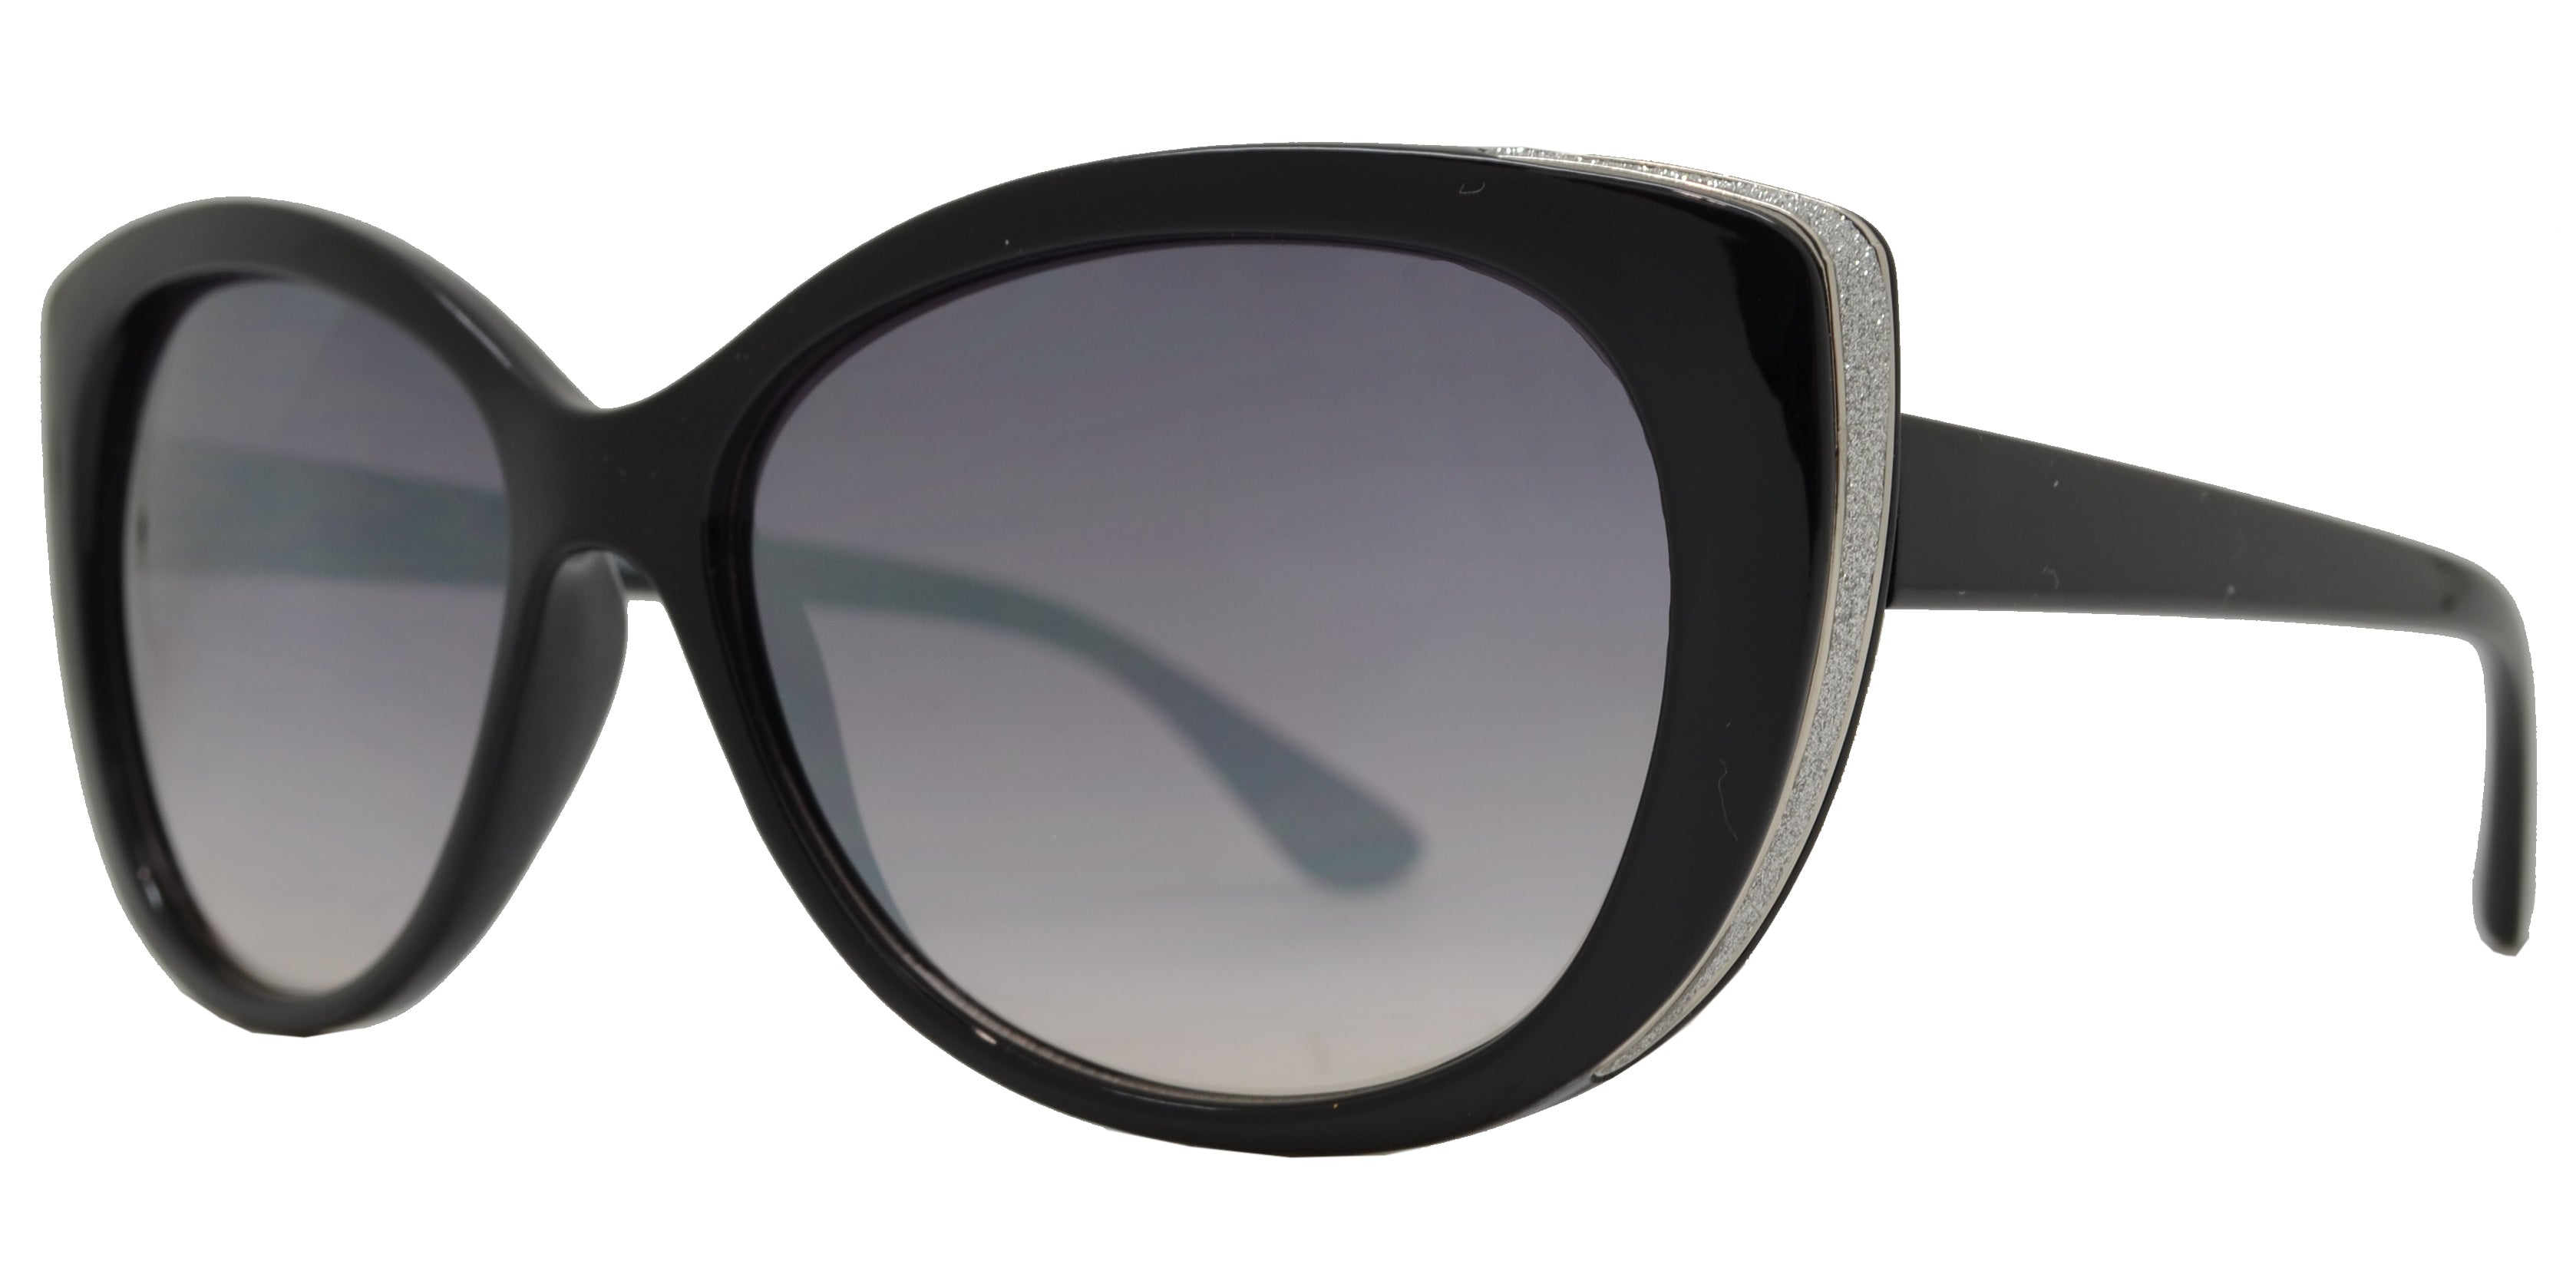 FC 6426 - Women's Chunky Plastic Cat Eye Sunglasses